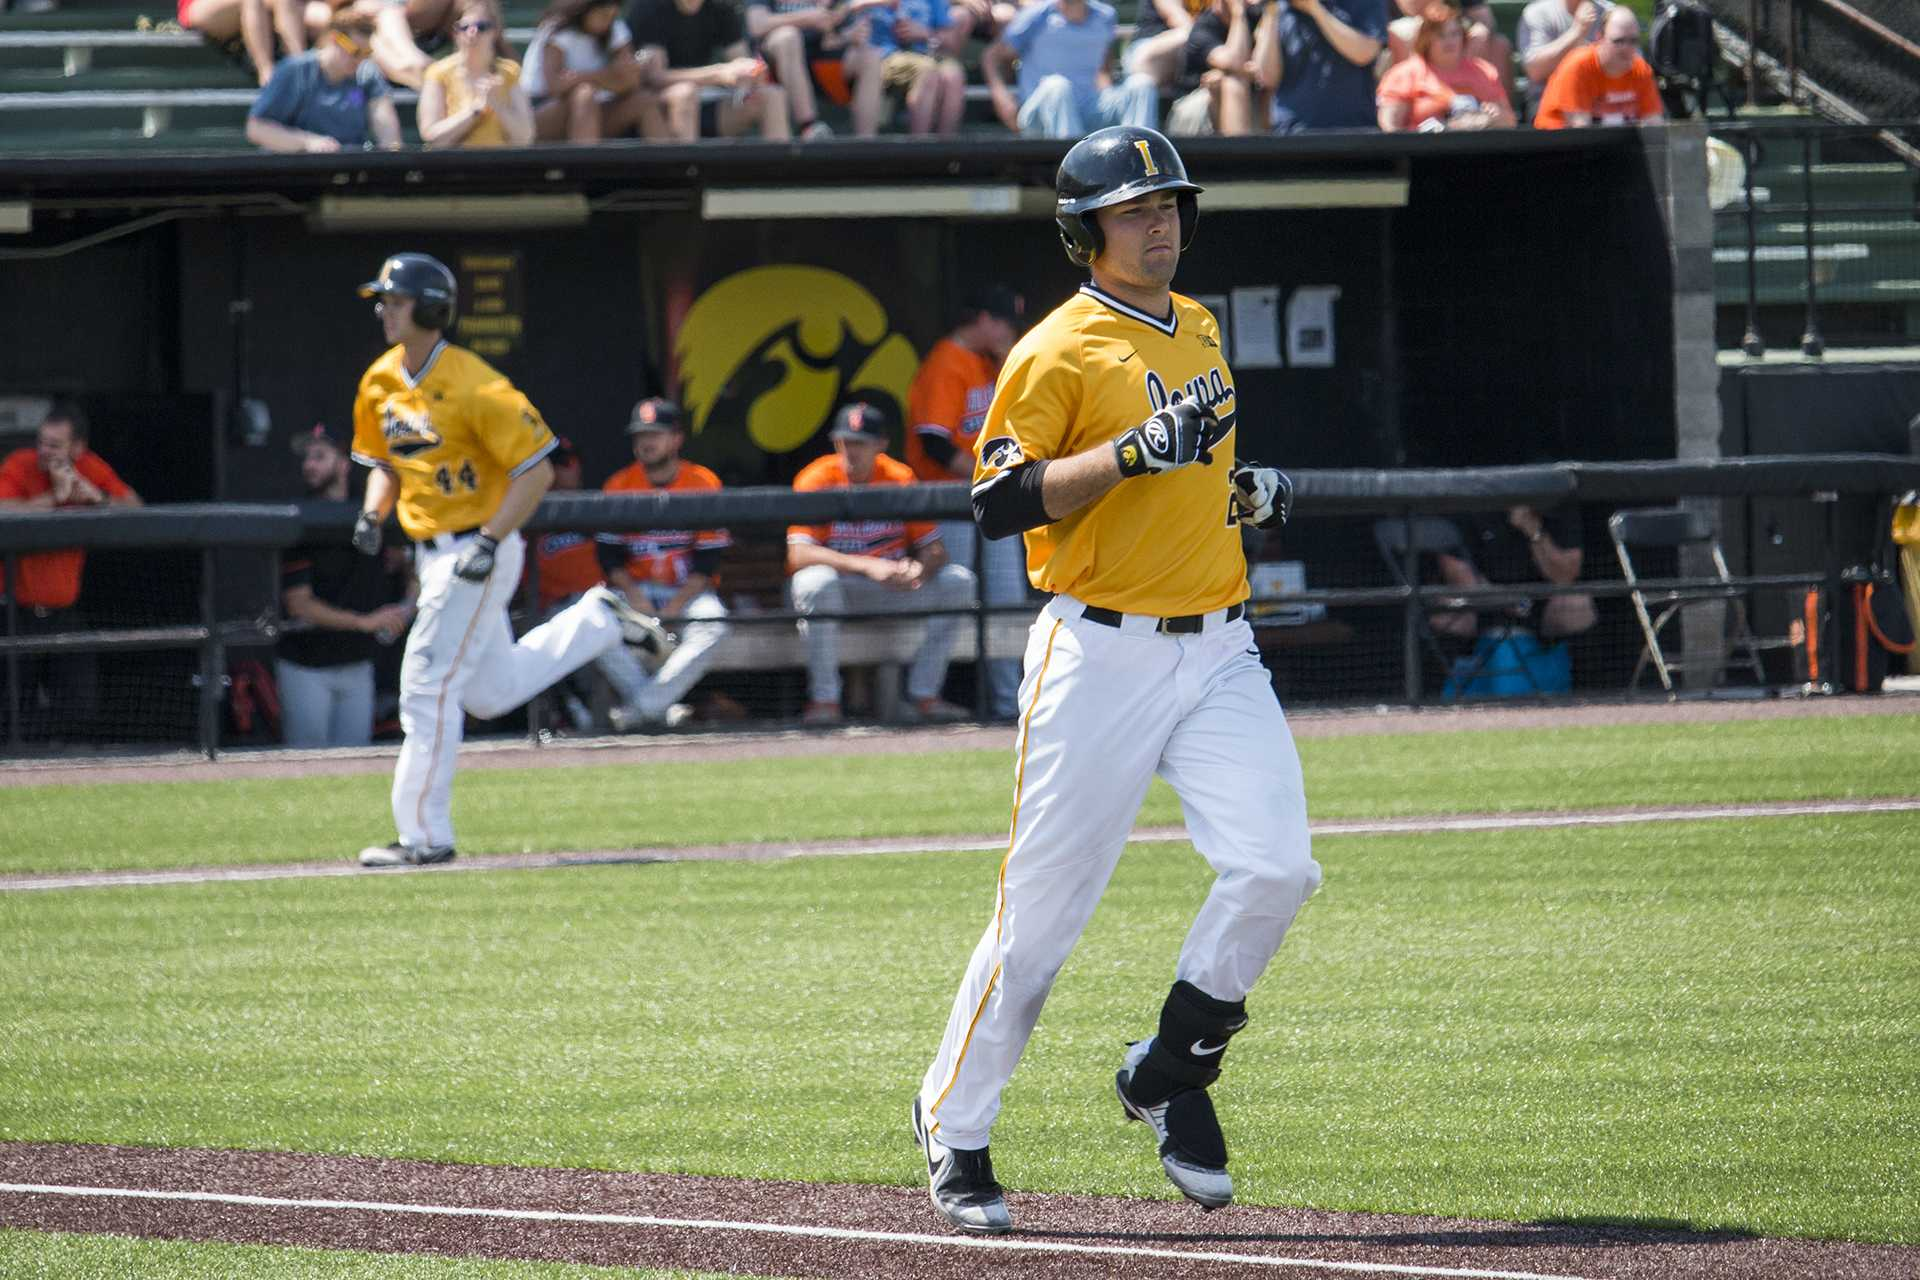 Iowa infielder Kyle Crowl runs to first base during baseball Iowa vs. Oklahoma State at Duane Banks Field on May 6, 2018. The Hawkeyes defeated the Cowboys 11-3.  (Katina Zentz/The Daily Iowan)